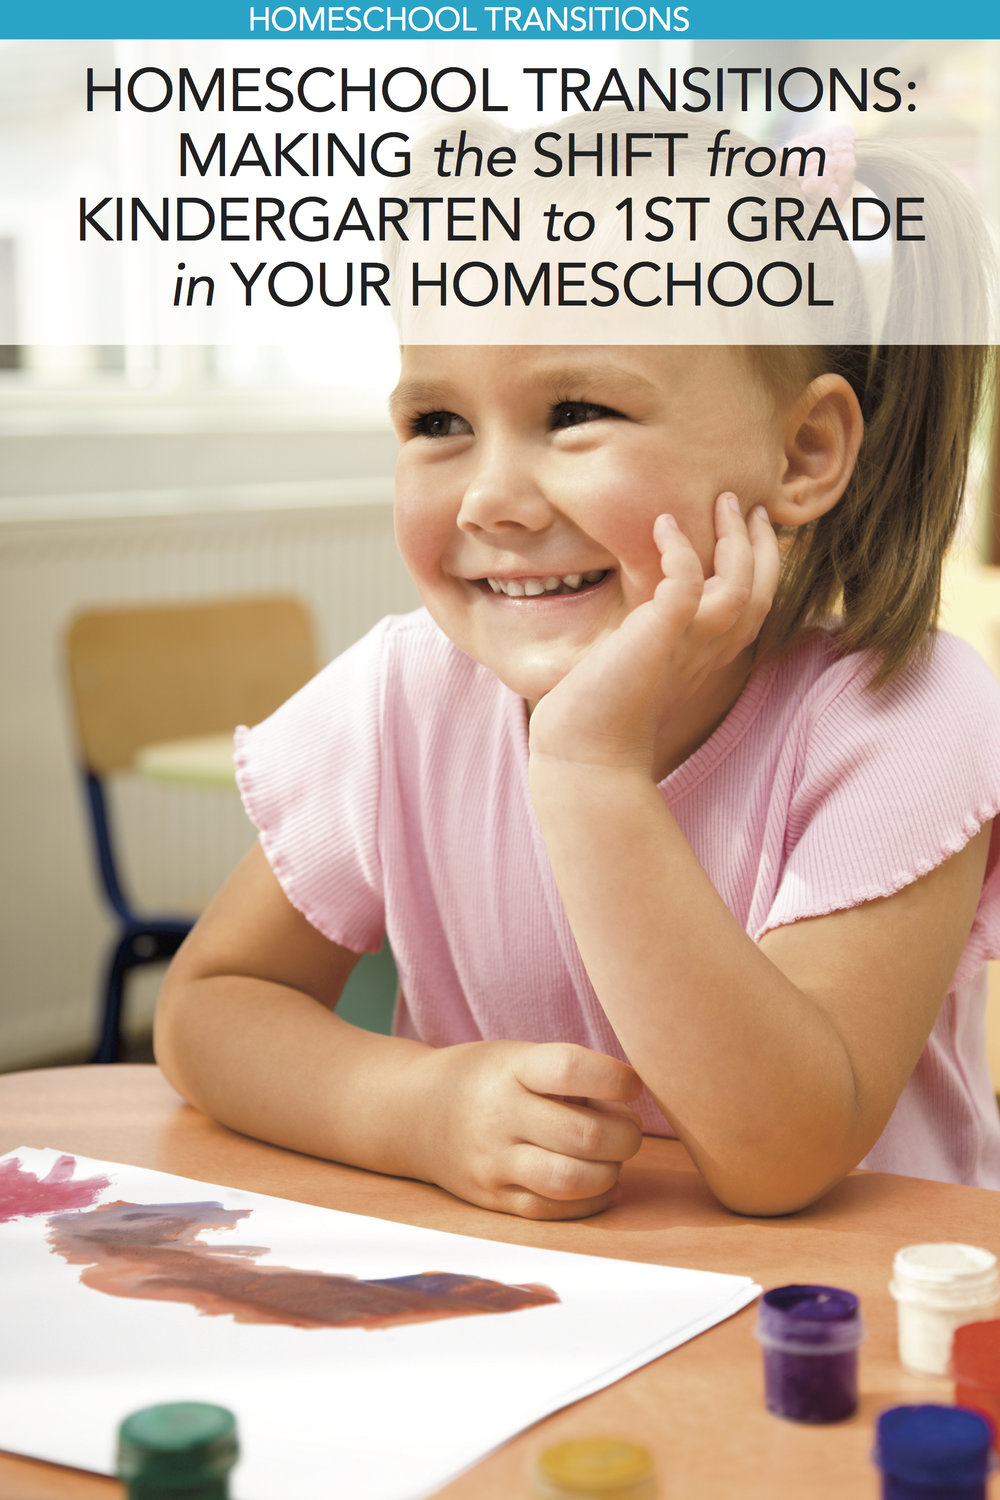 Homeschool Transitions: Making the Shift from Kindergarten to 1st Grade in Your Homeschool